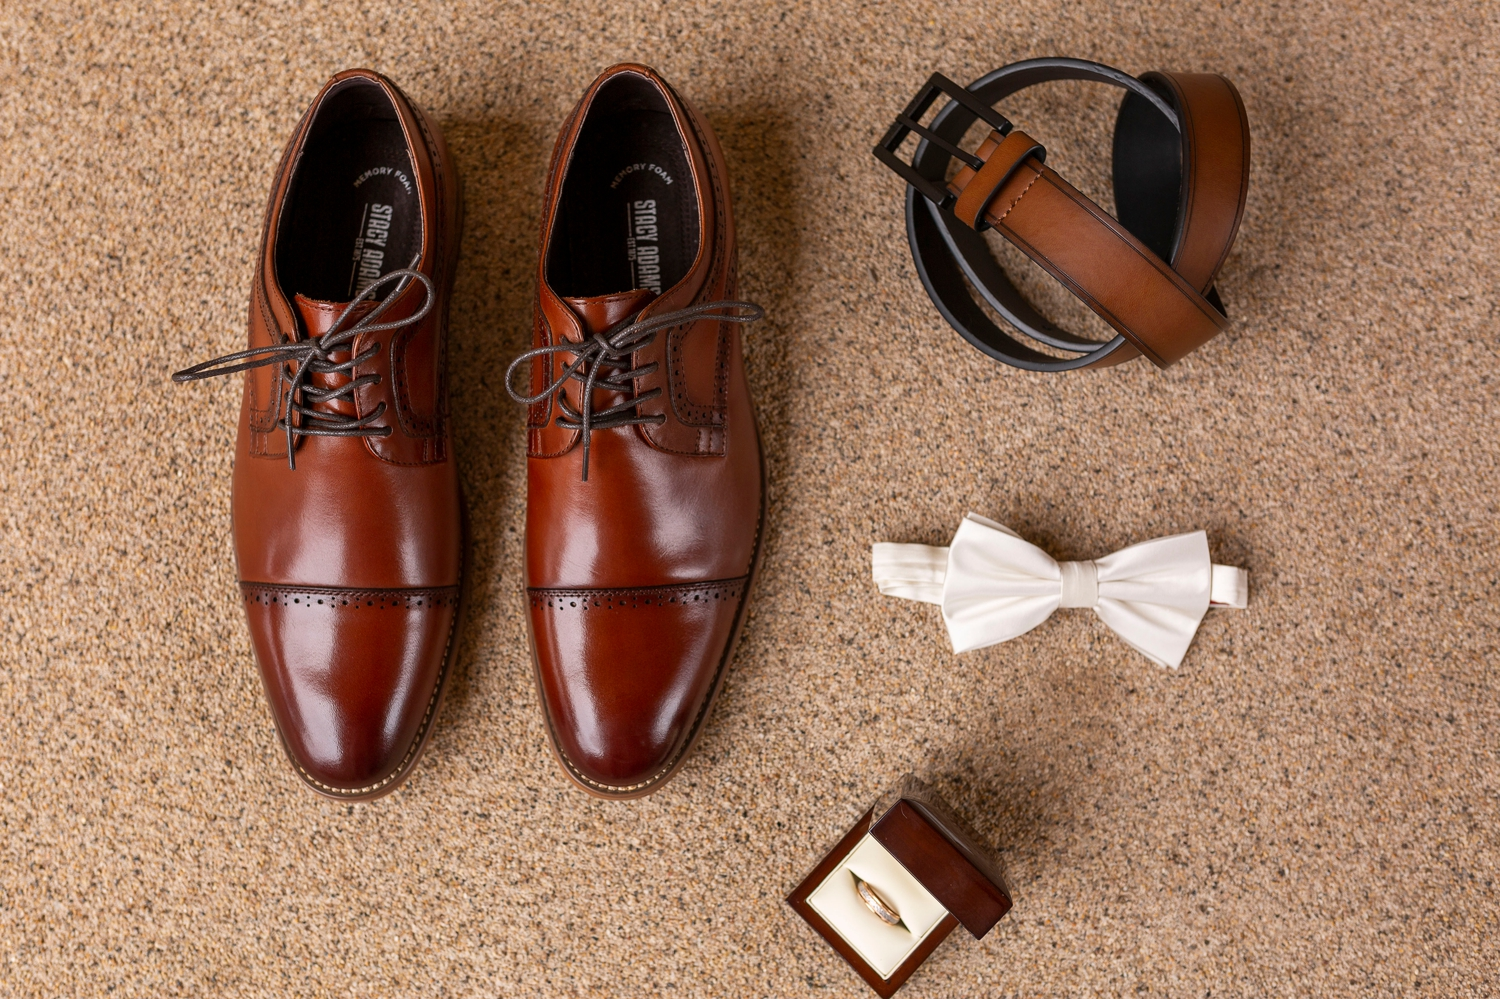 brown shoes, white bowtie, groom details, wedding ring, brown belt, Superstition Manor, Superstition Wedding, Spring Wedding Inspiration, Arizona Destination Wedding, Arizona Wedding Photographer, Mesa Wedding Venues, Destination Wedding, Superstition Springs, getting ready photos